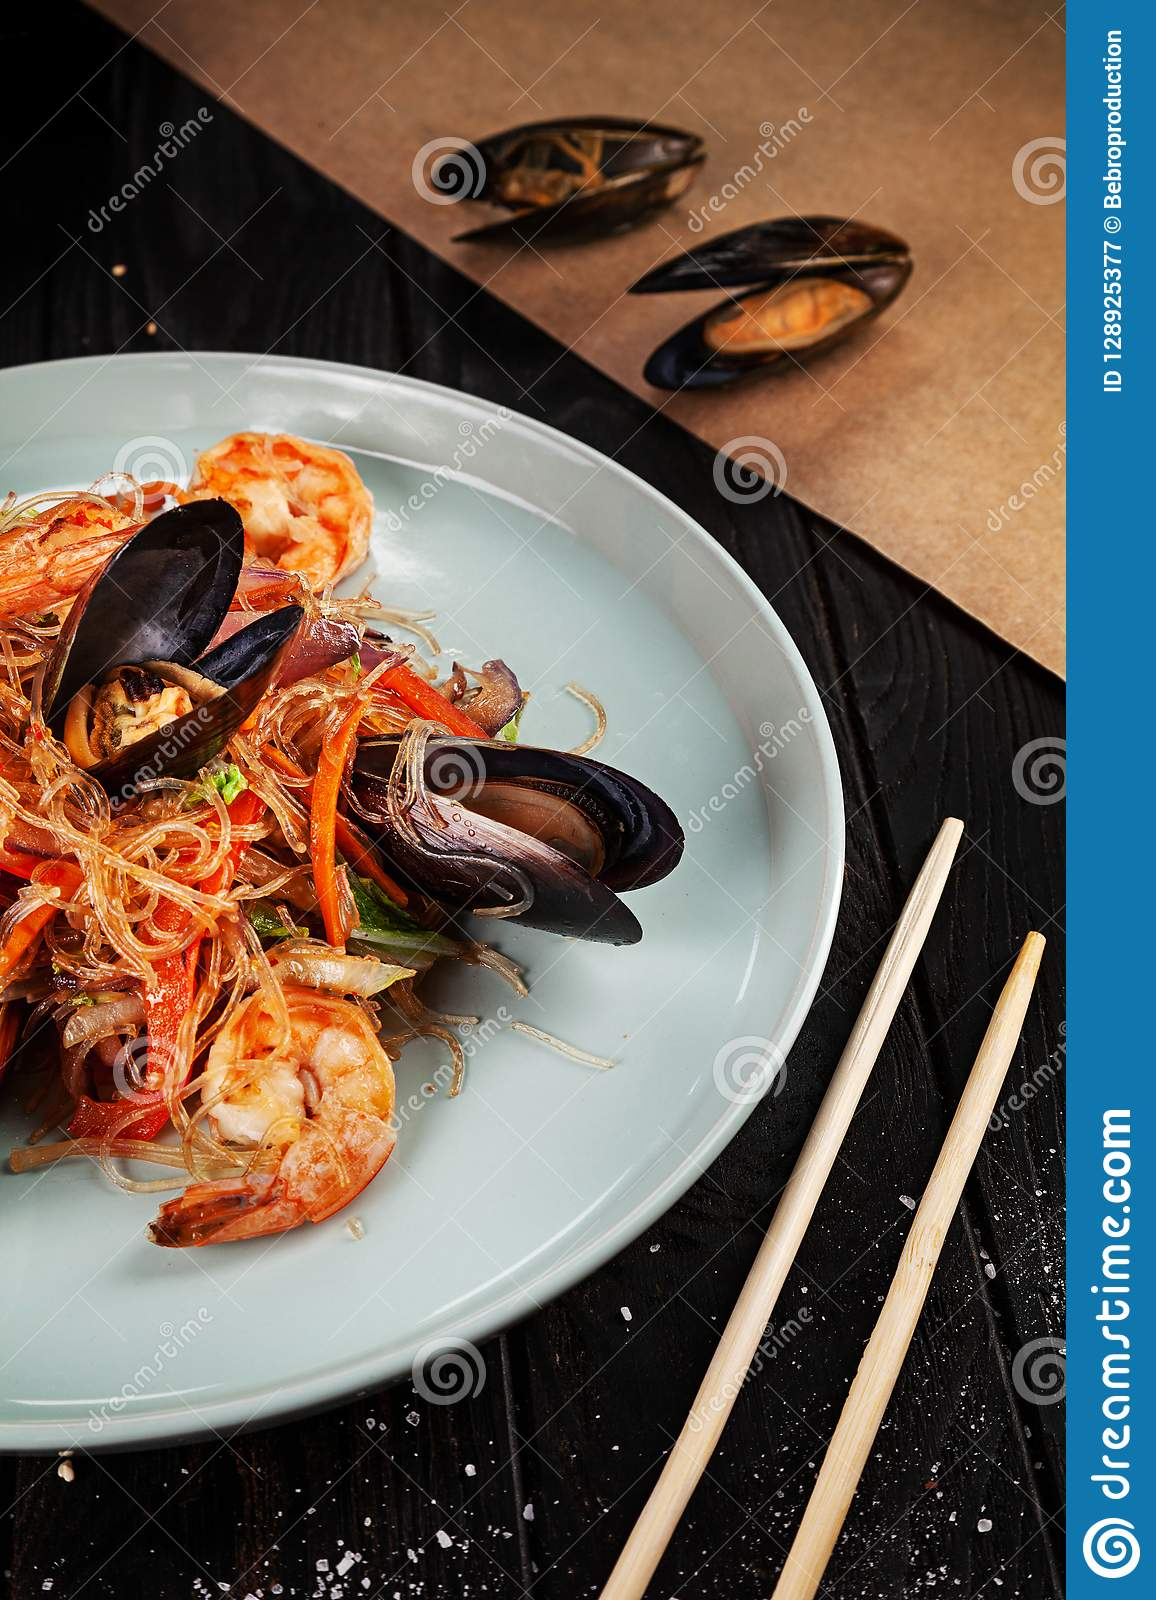 Delicious close up view on Chinese noodles with mussels.